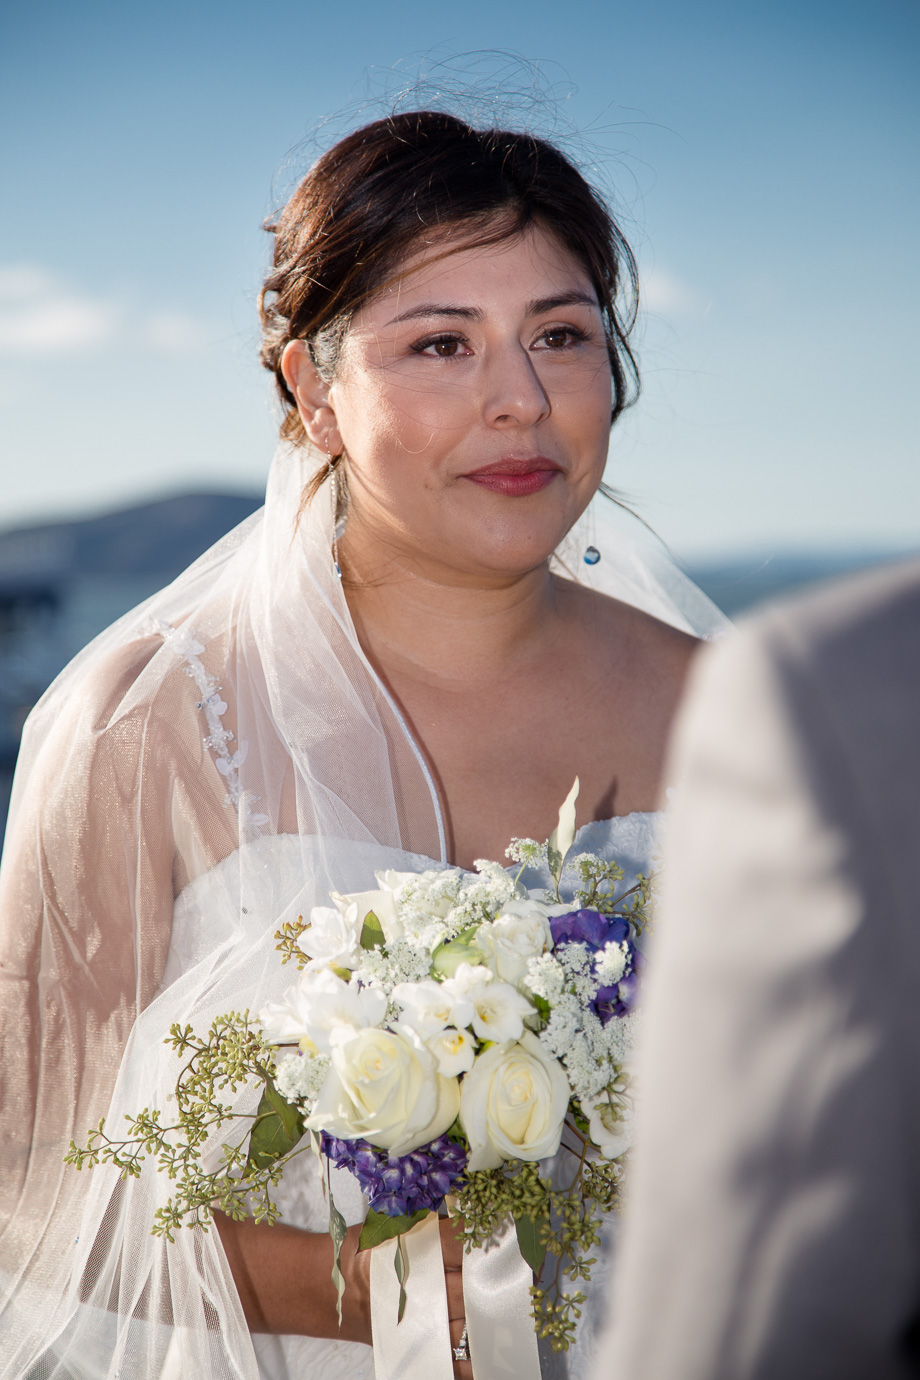 Teary-eyed bride looking at groom